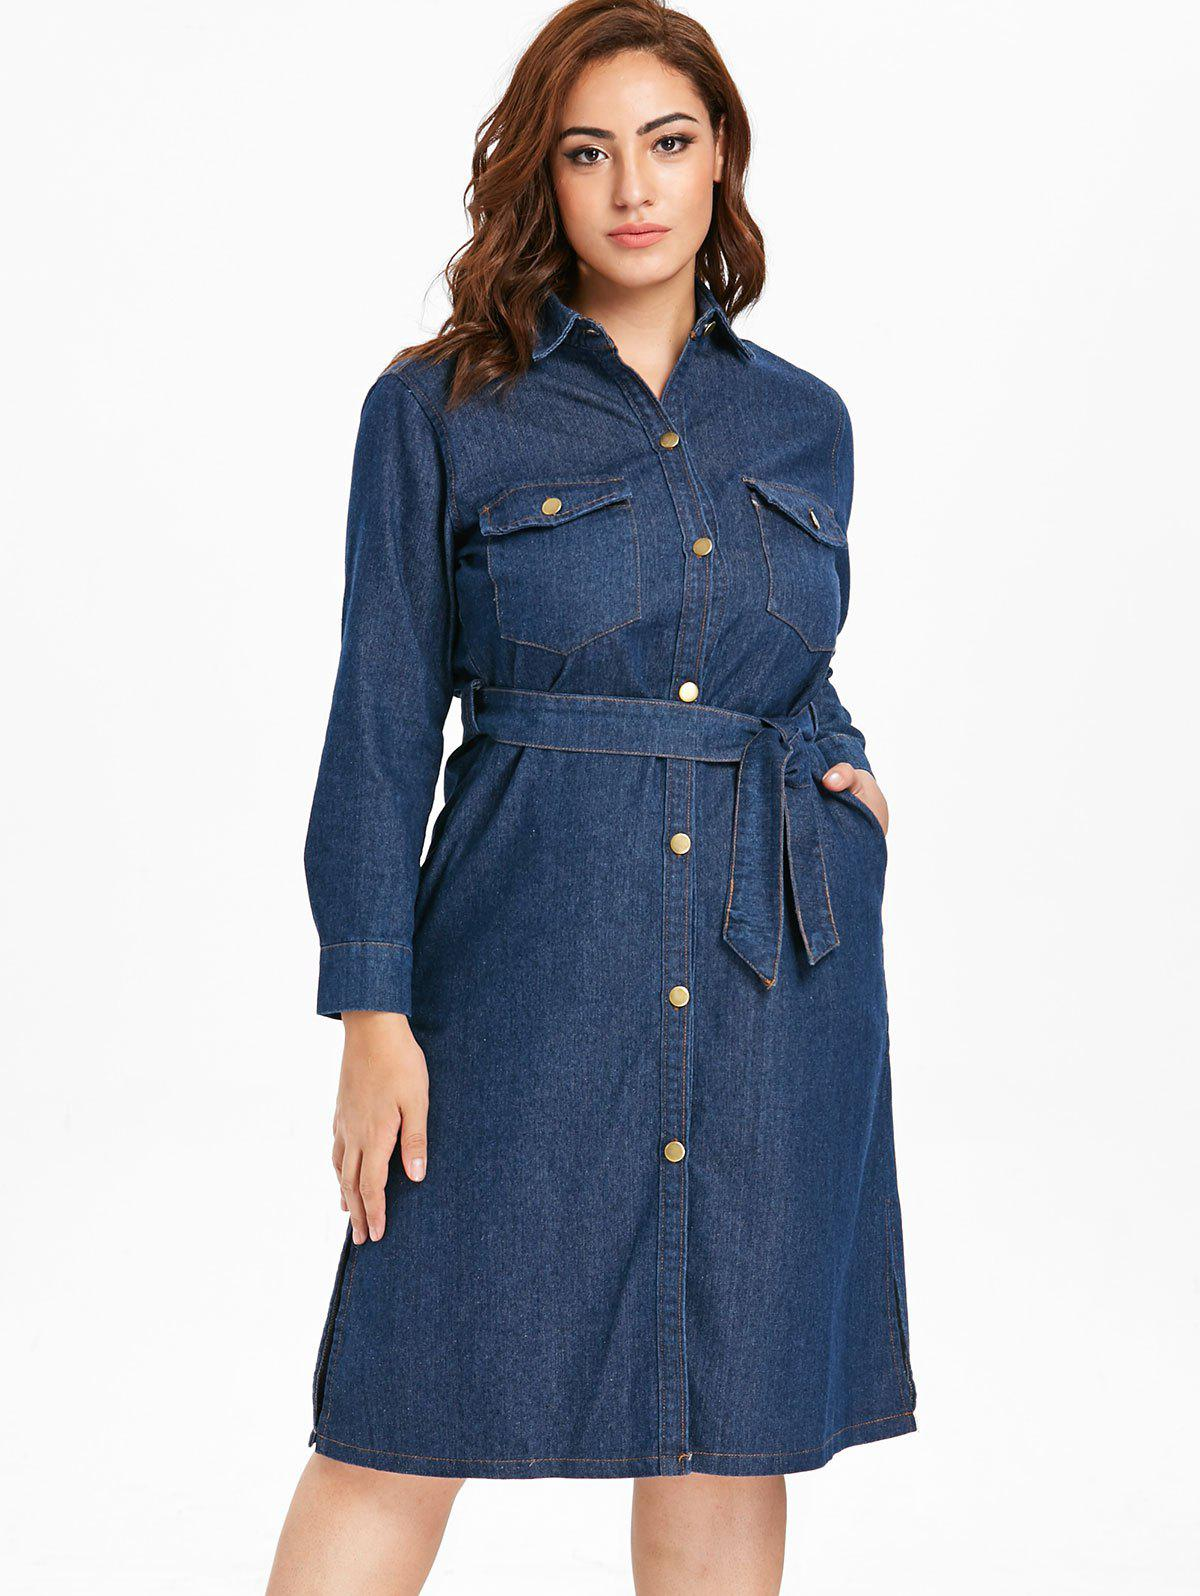 Denim Plus Size Shirt Dress